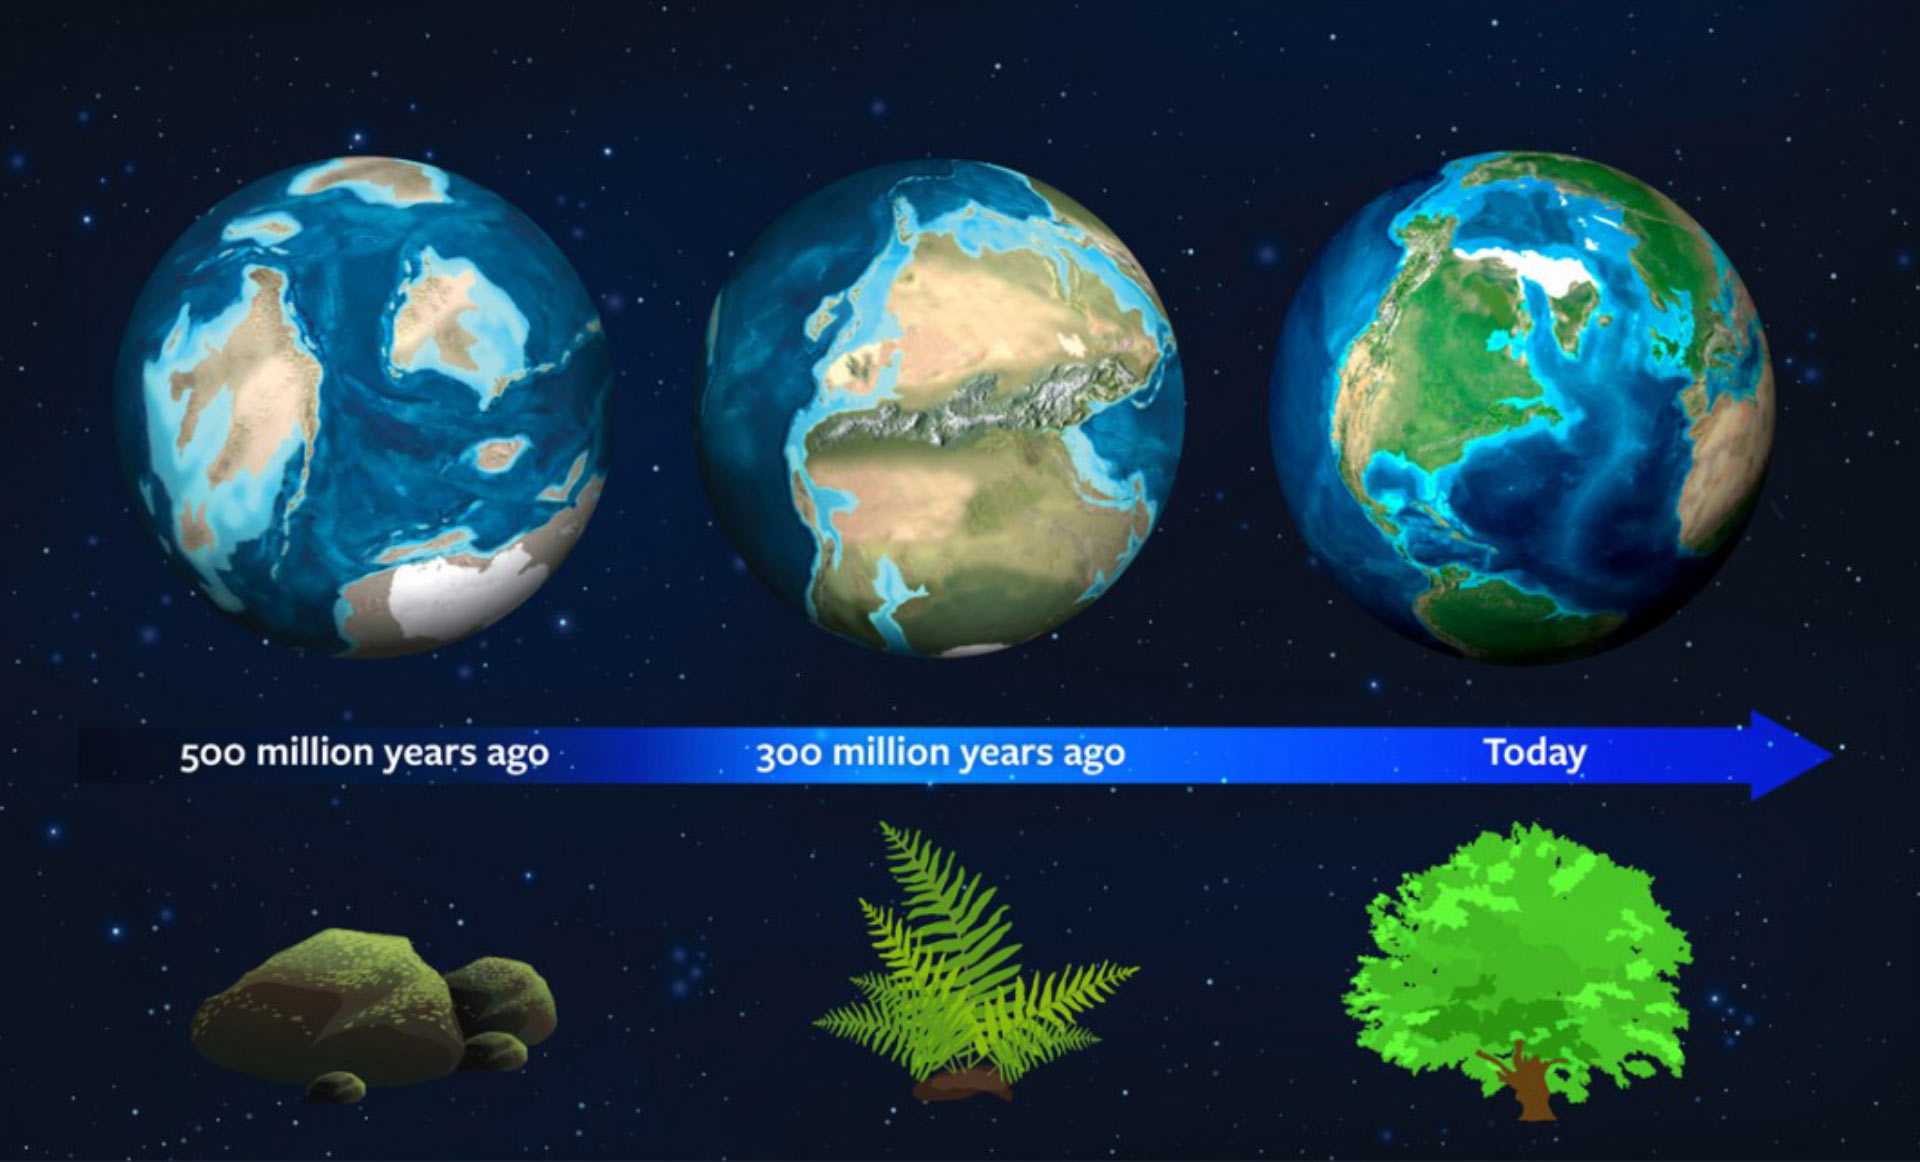 Earth S Natural History May Serve As Guide For